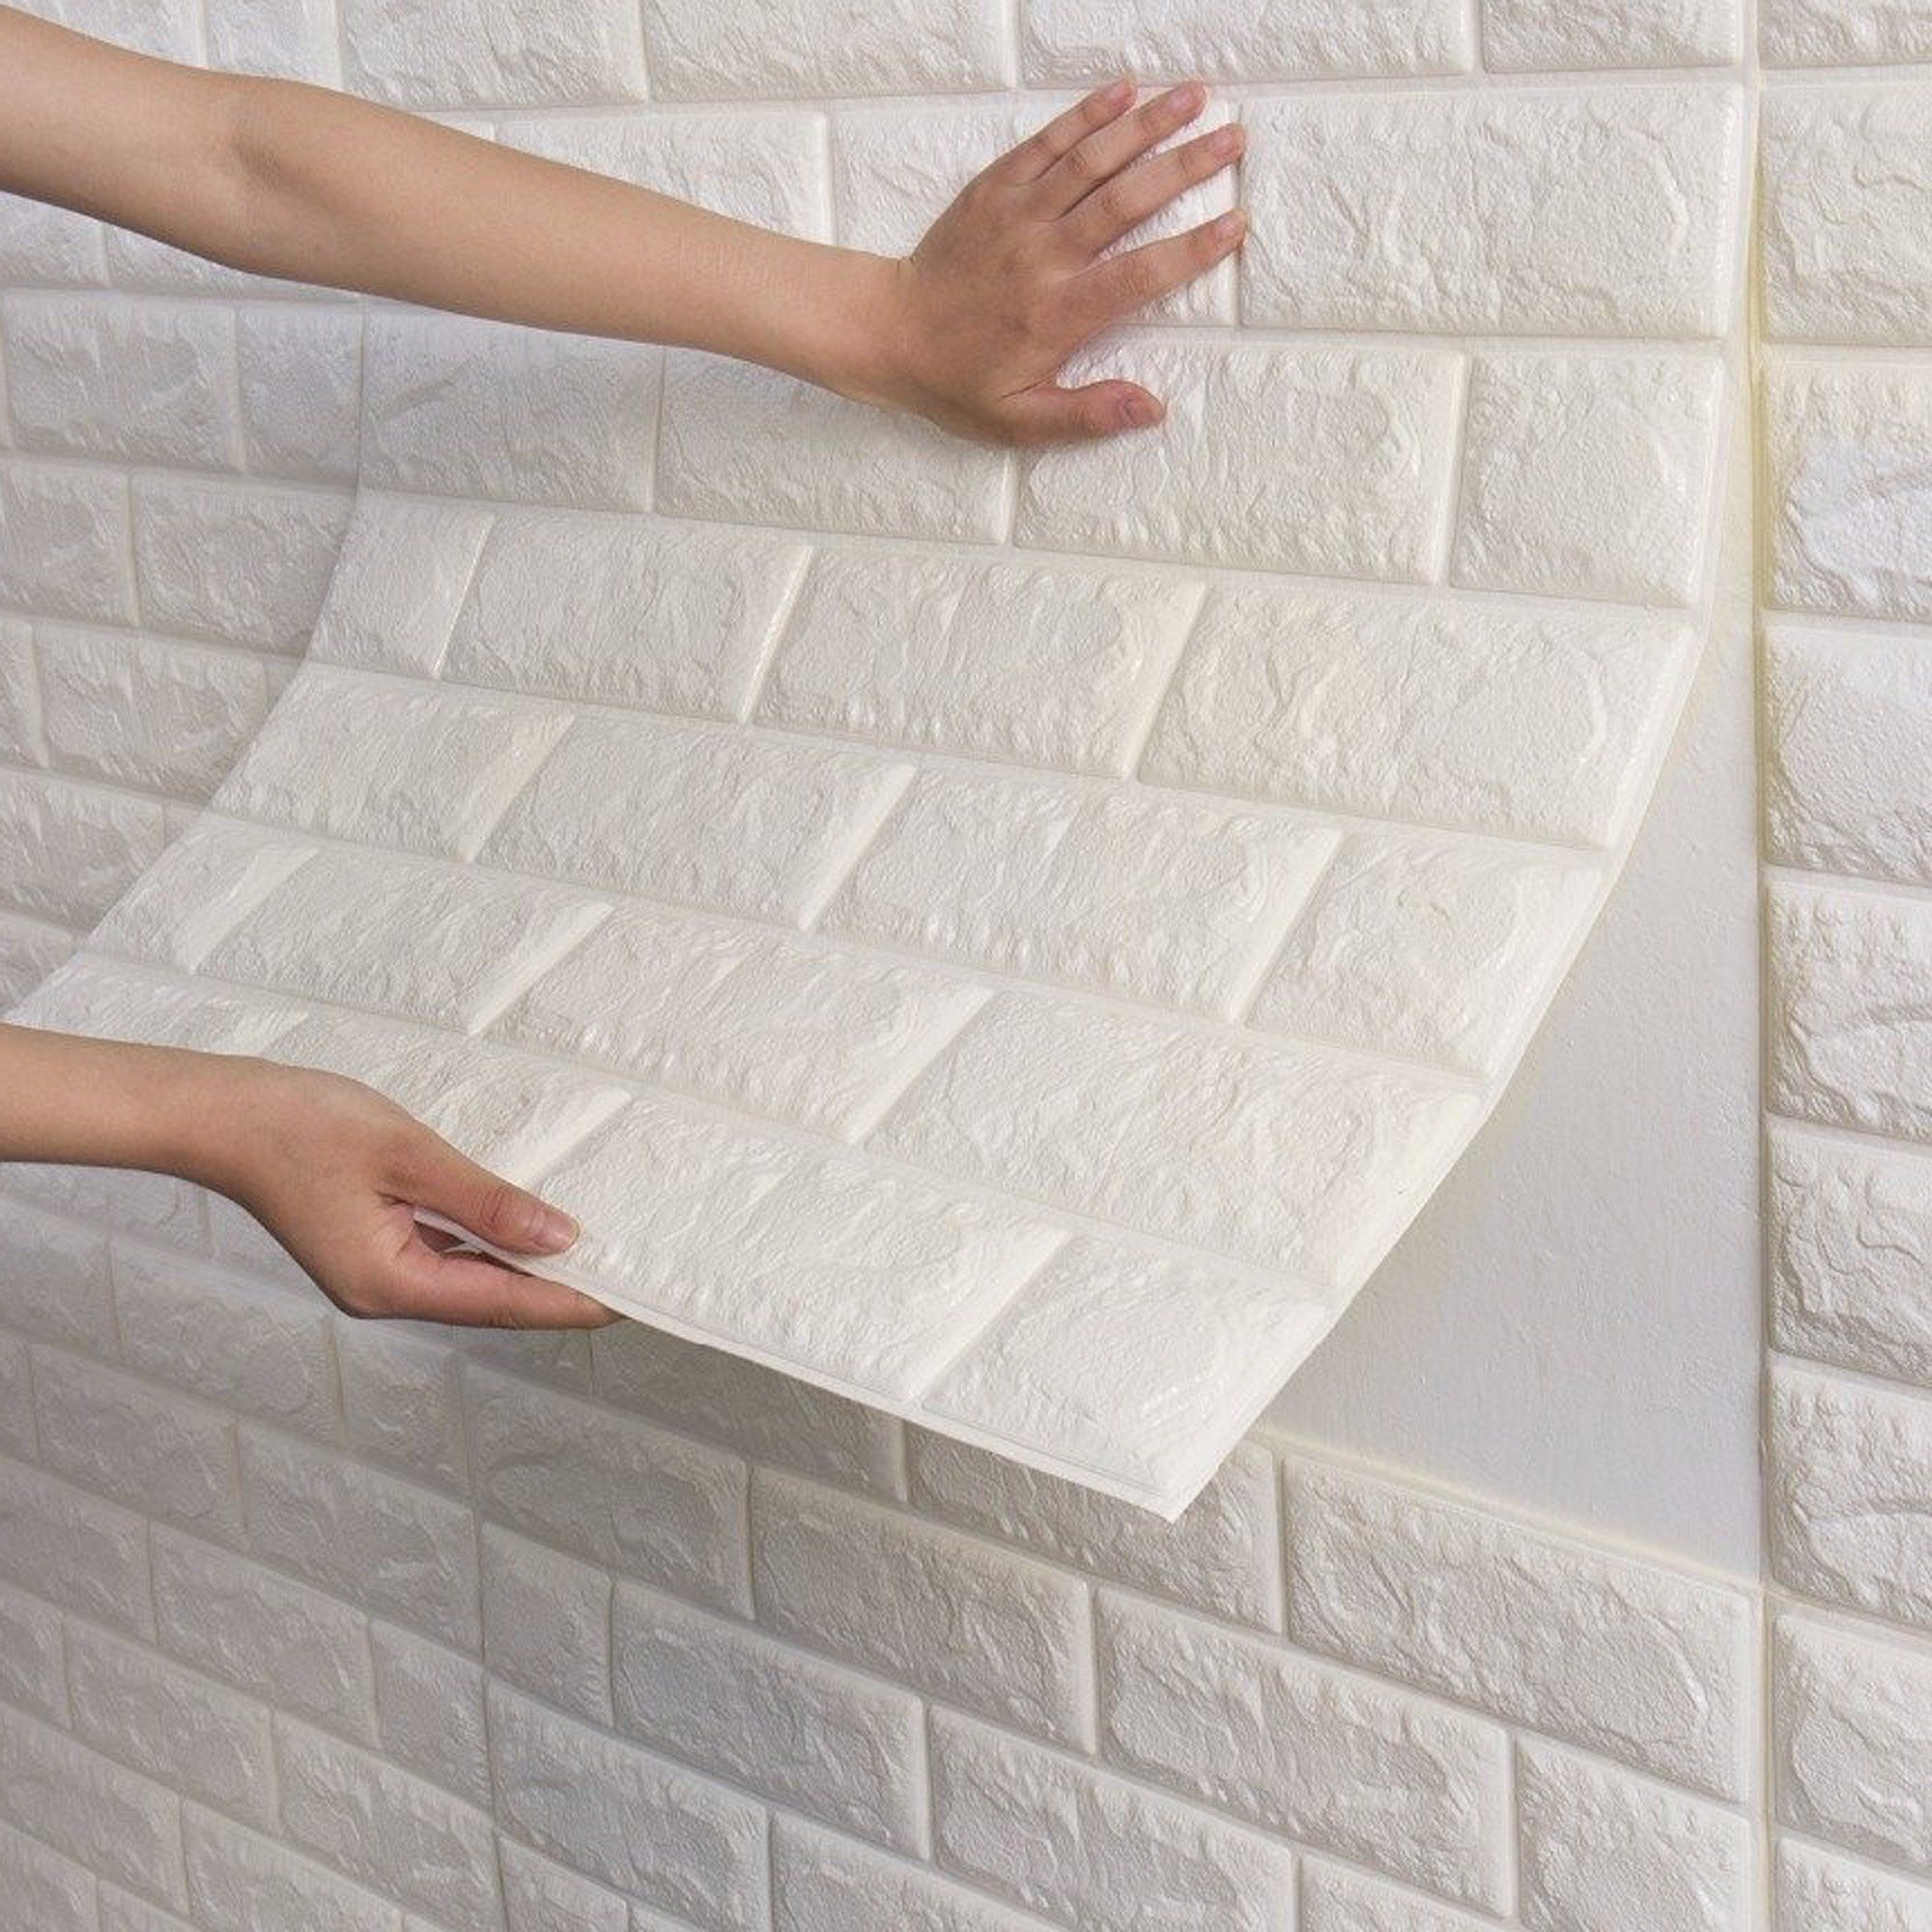 Nk 1 500 Pieces Pe Foam Self Adhesive 3d Wall Stickers Wallpaper Embossed Brick Ceramic Tile Stone Wall Panels Decals Walmart Com In 2021 Stone Wall Panels White Brick Wallpaper Faux Brick Wall Panels